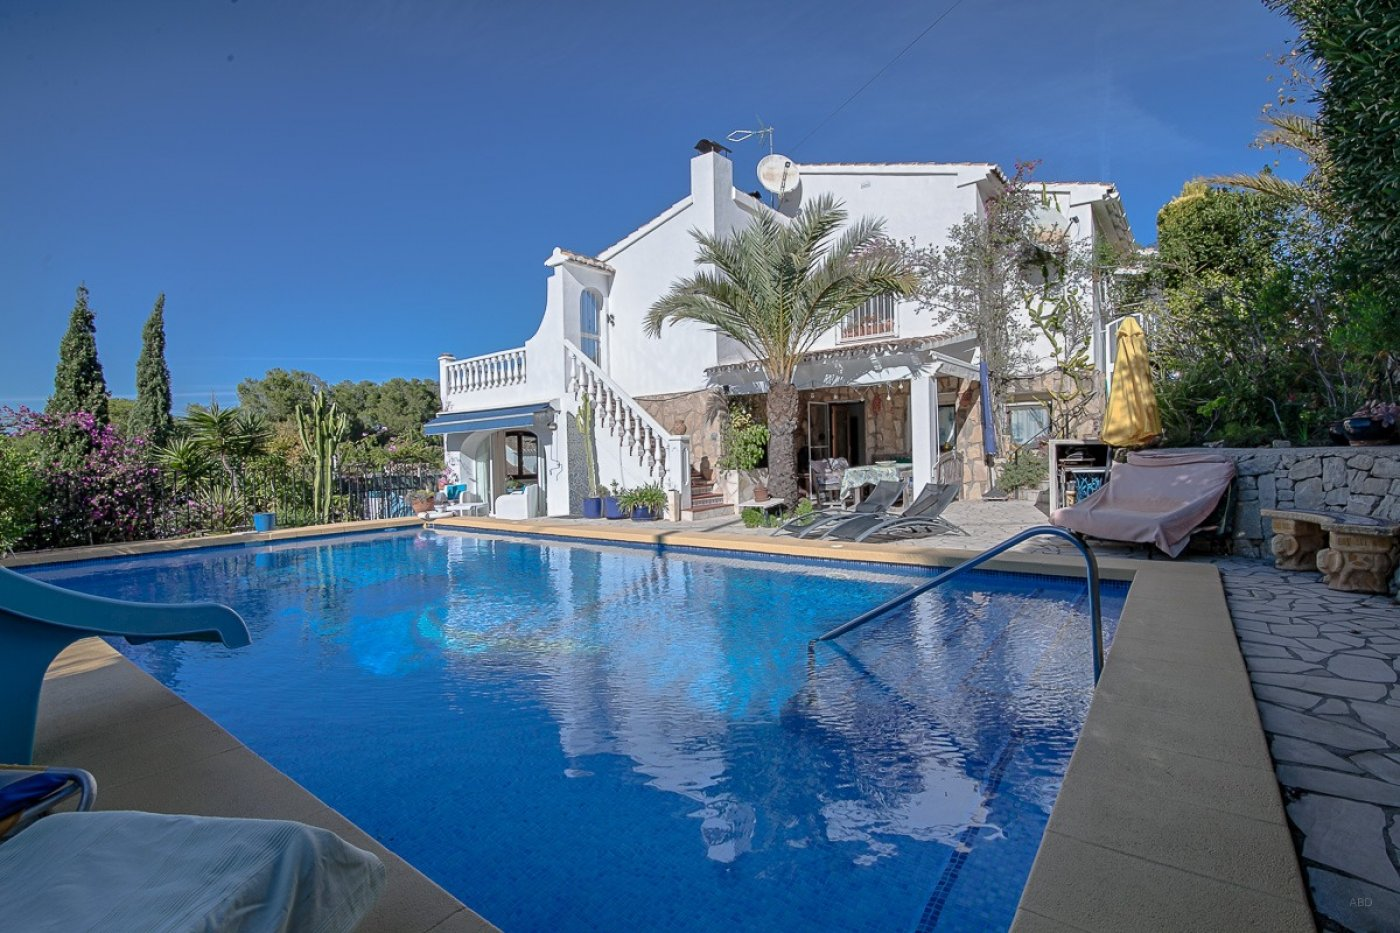 Villa - Ready To Move And Live - Alcasar - Moraira